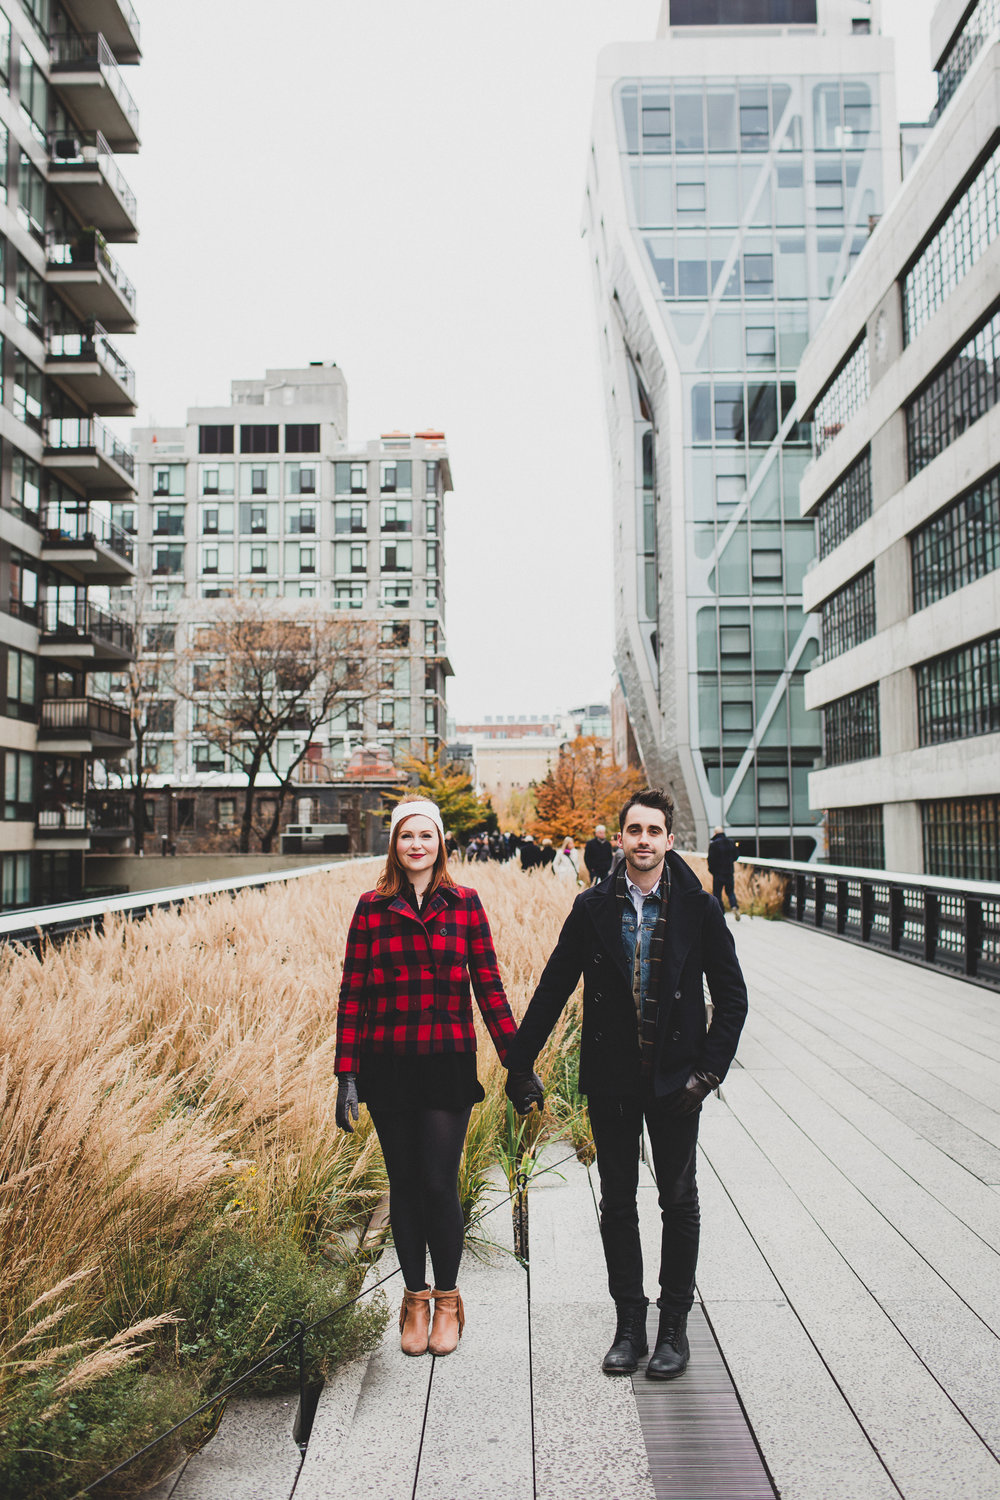 The-High-Line-Manhattan-Fall-Engagement-Photos-by-Elvira-Kalviste-Photography-18.jpg